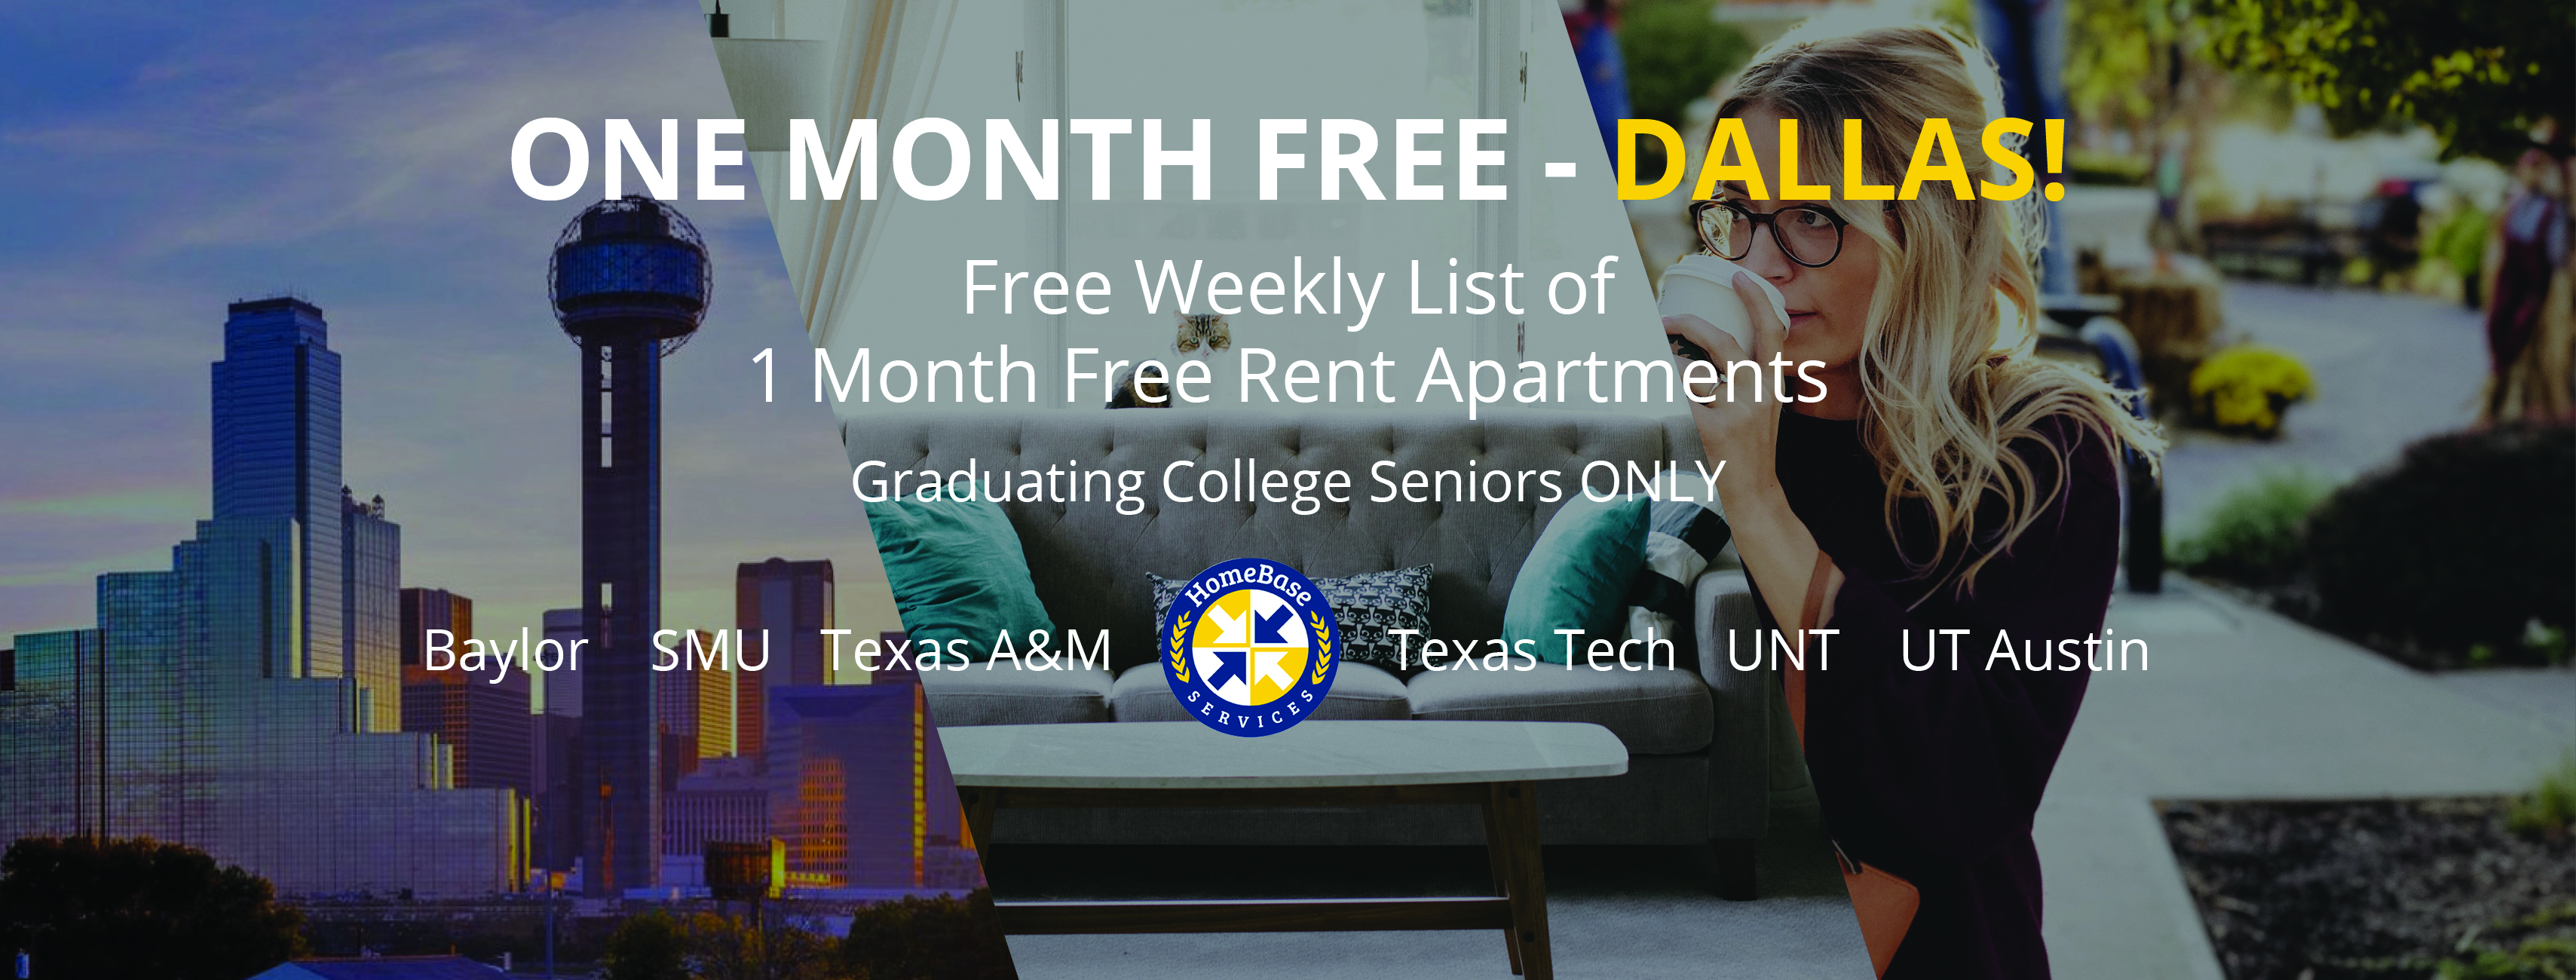 Weekly Free Rent Apartment Specials in Dallas & Houston – March 1 2018